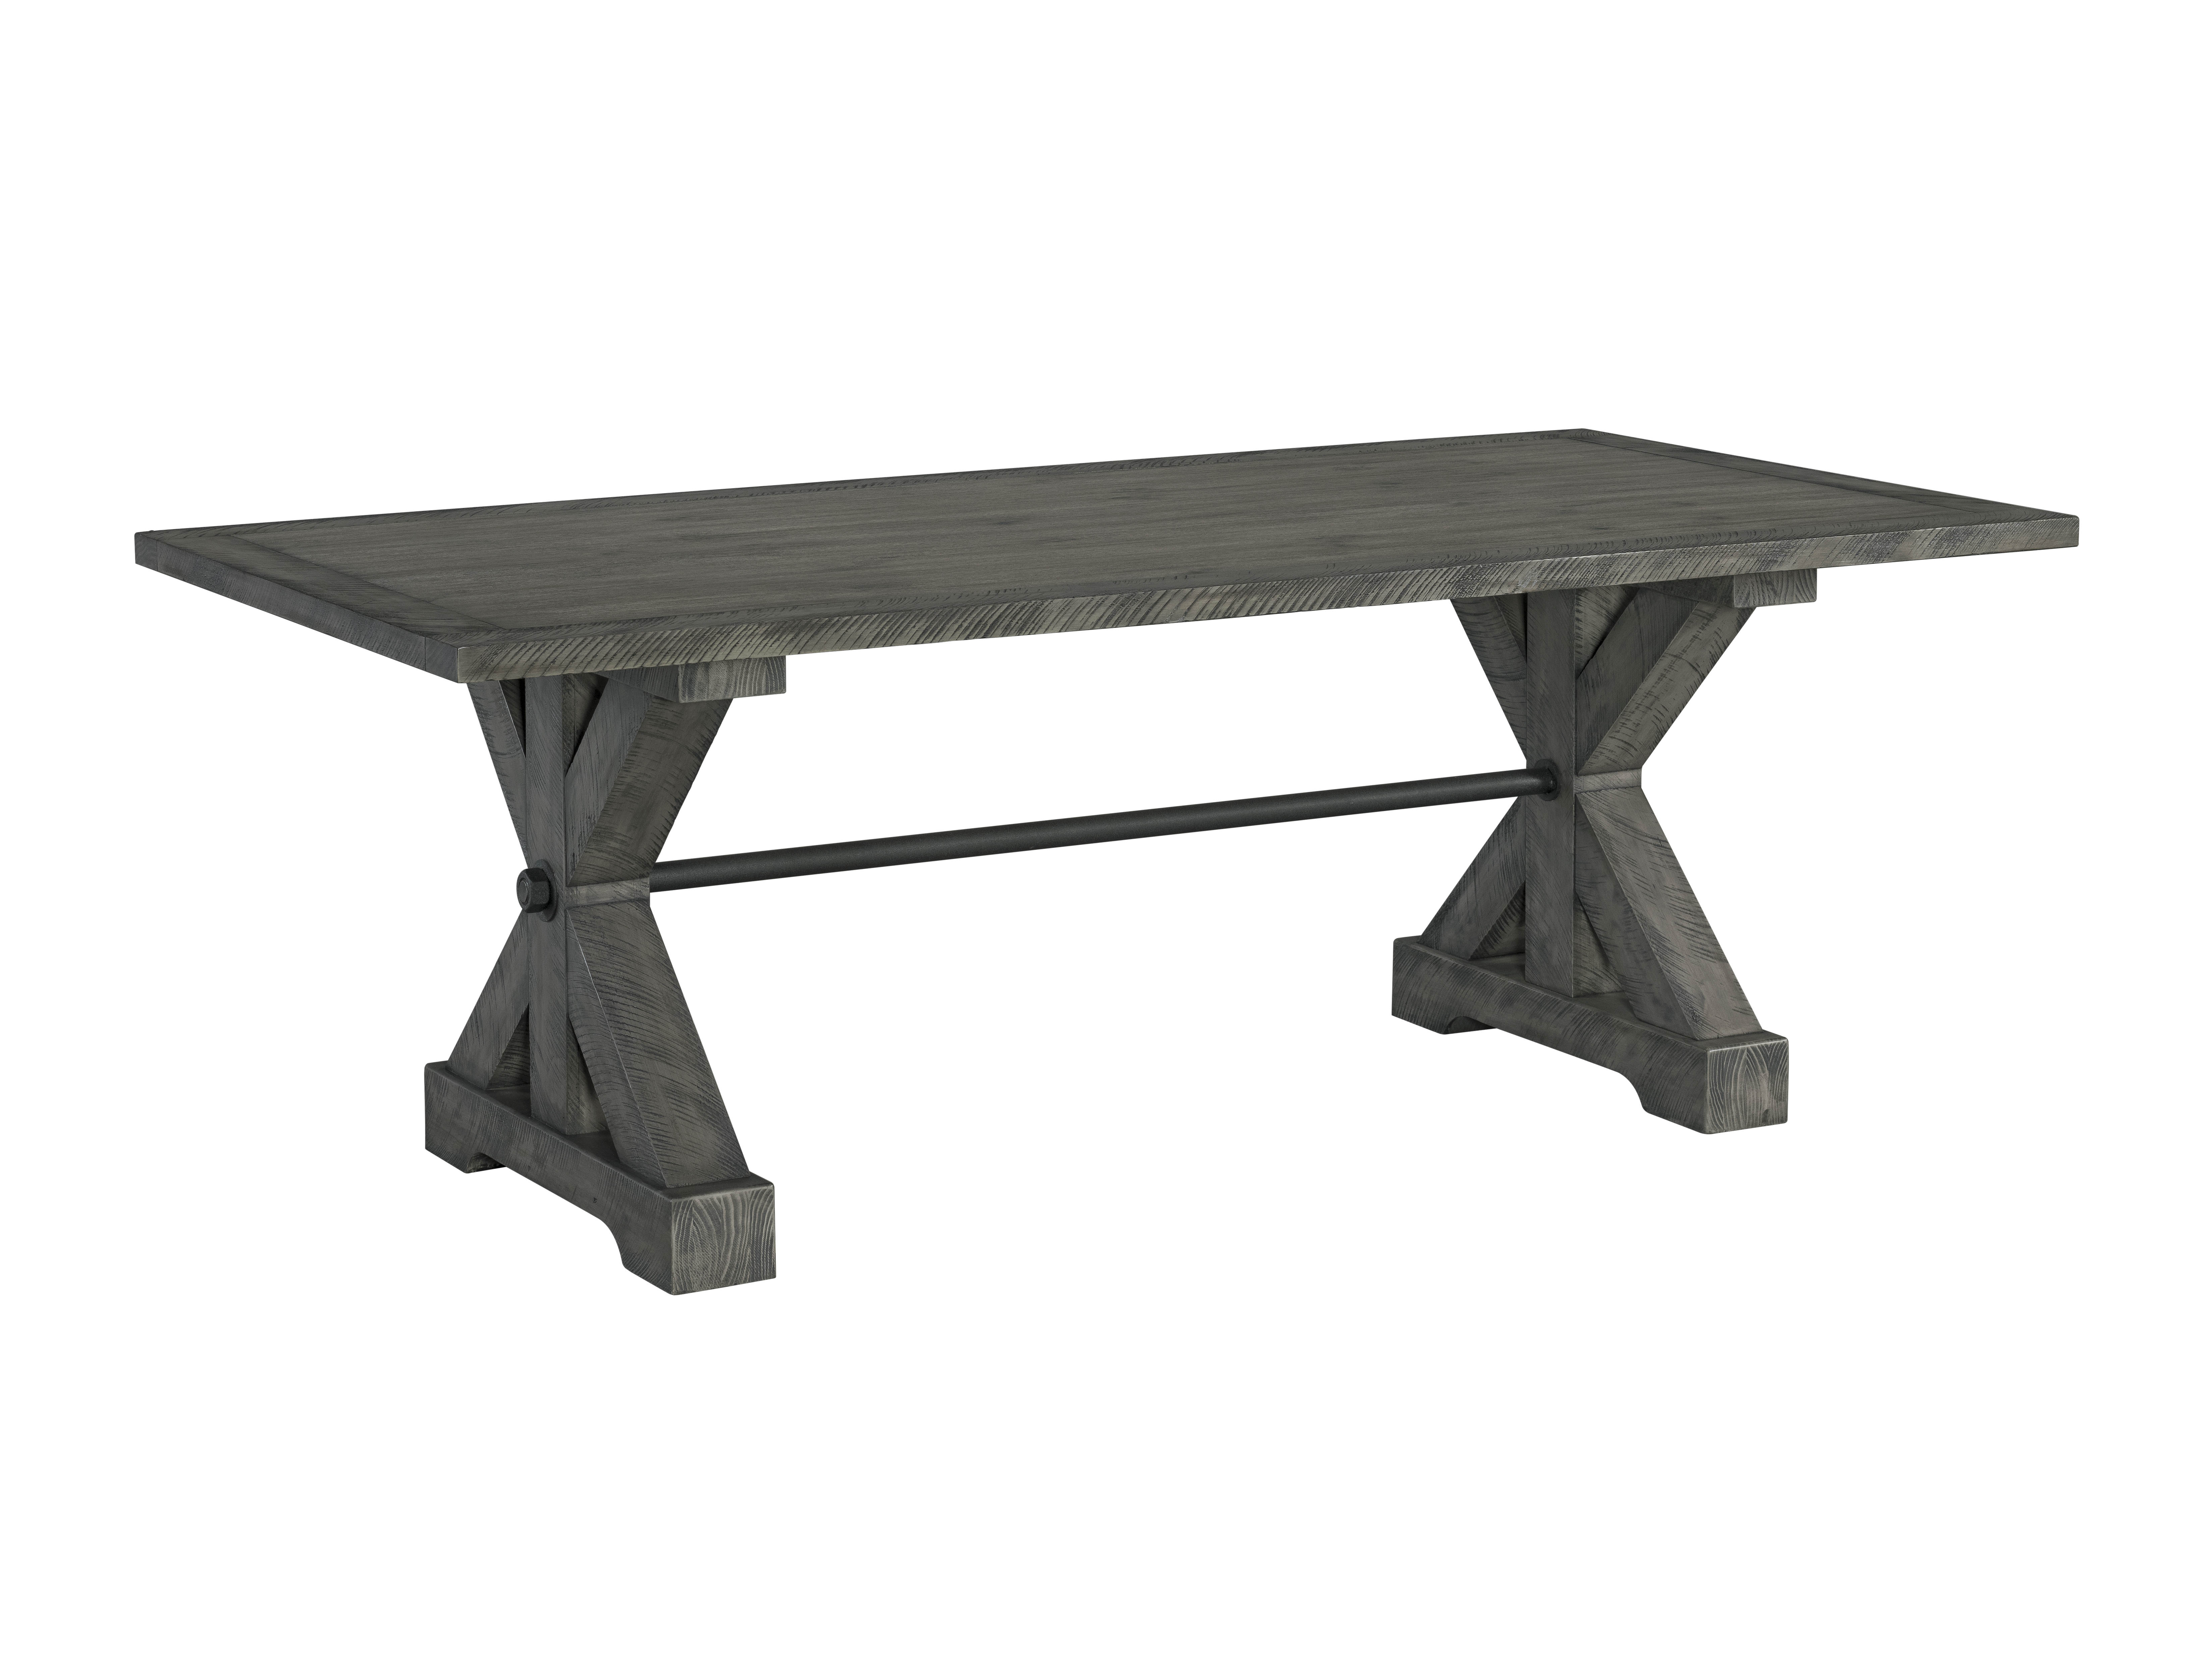 Miraculous Lane Furniture Old Forge Grey Trestle Dining Table Machost Co Dining Chair Design Ideas Machostcouk